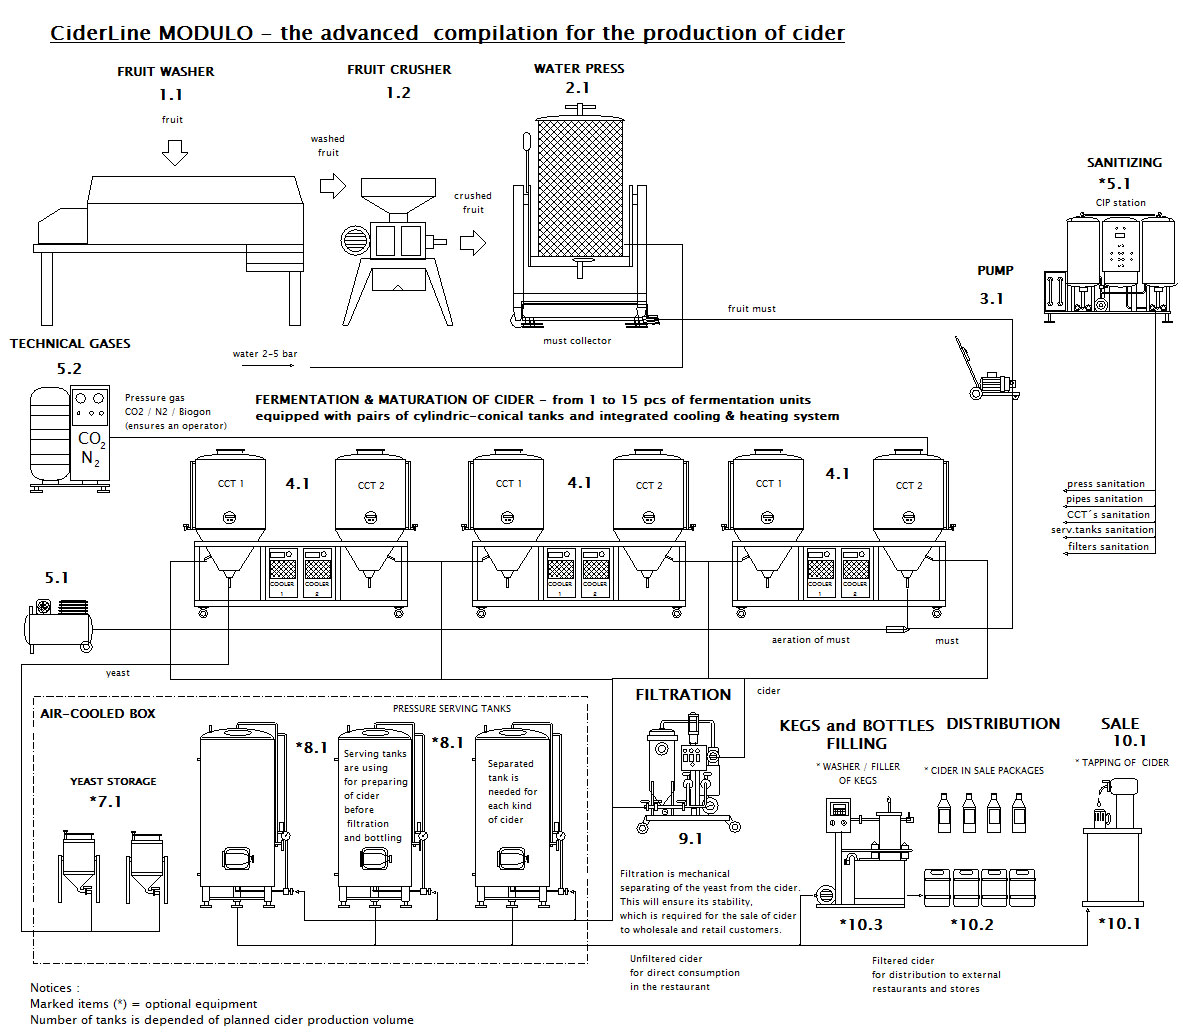 Cider production line CiderLine Modulo scheme